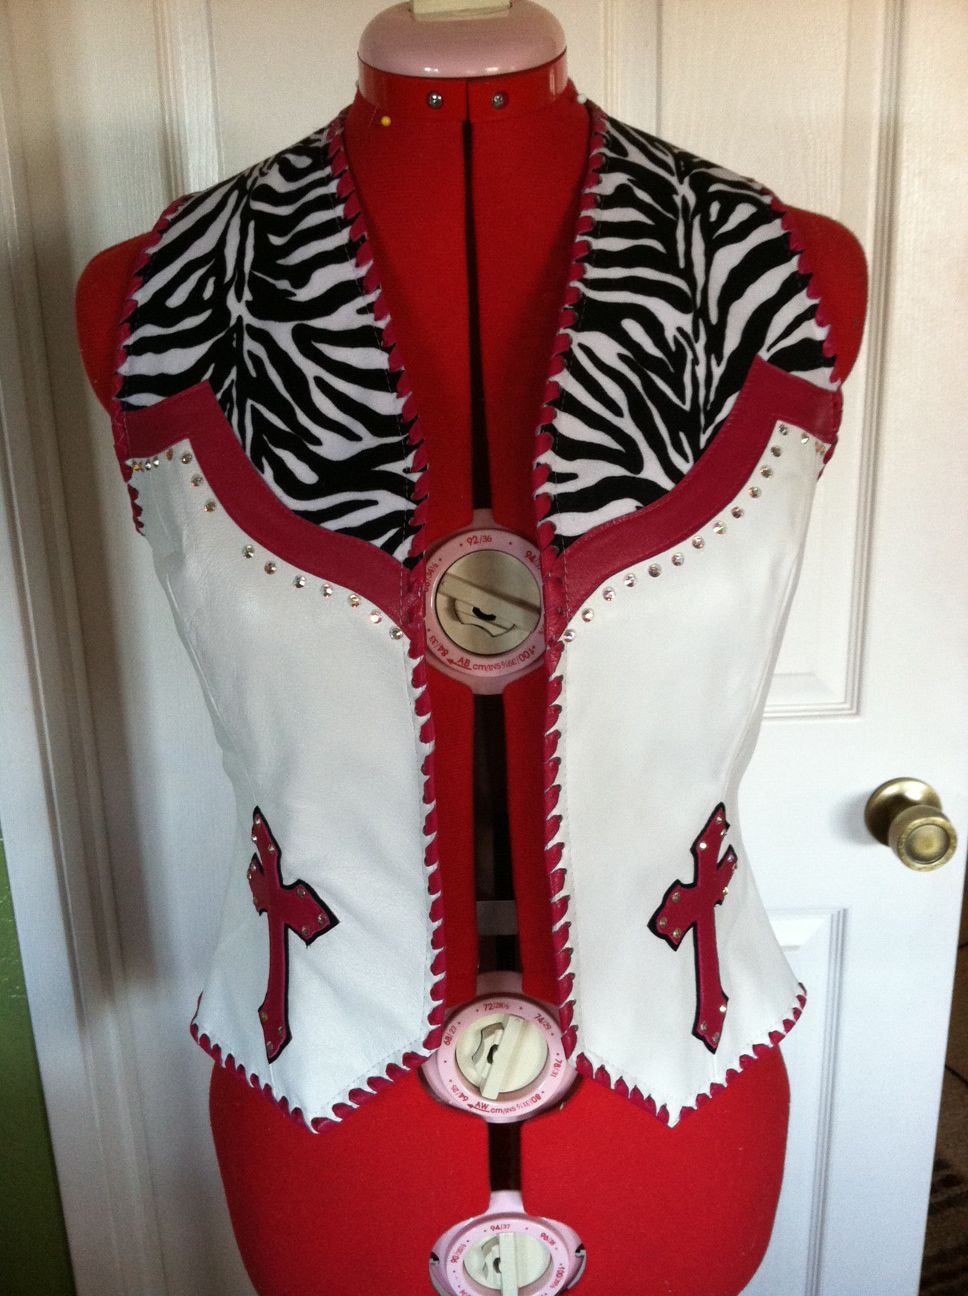 melloworks Jackets & Vests Rodeo queen clothes, Rodeo